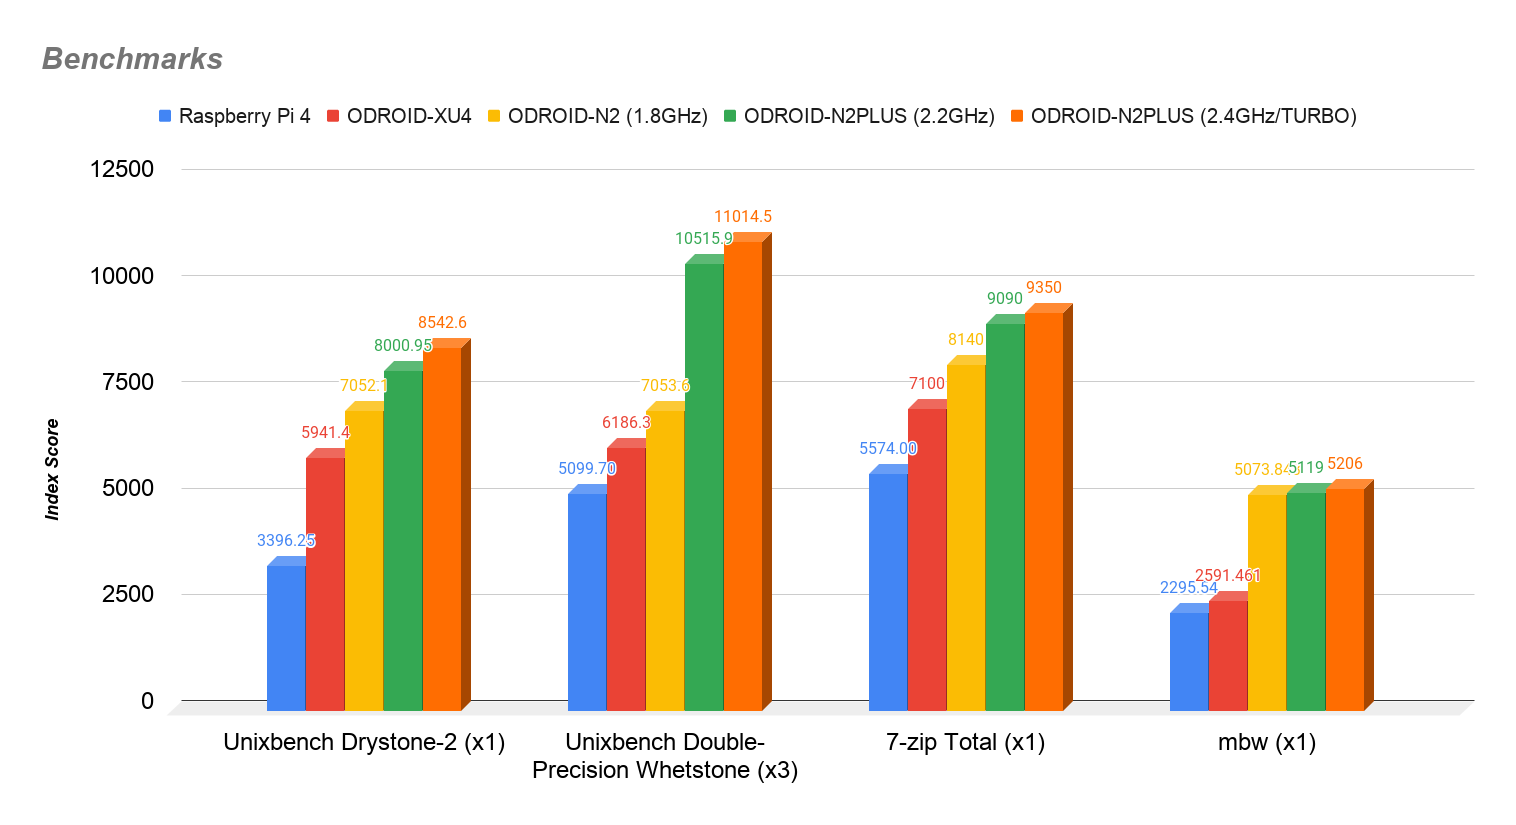 N2plusBenchmarks1.png